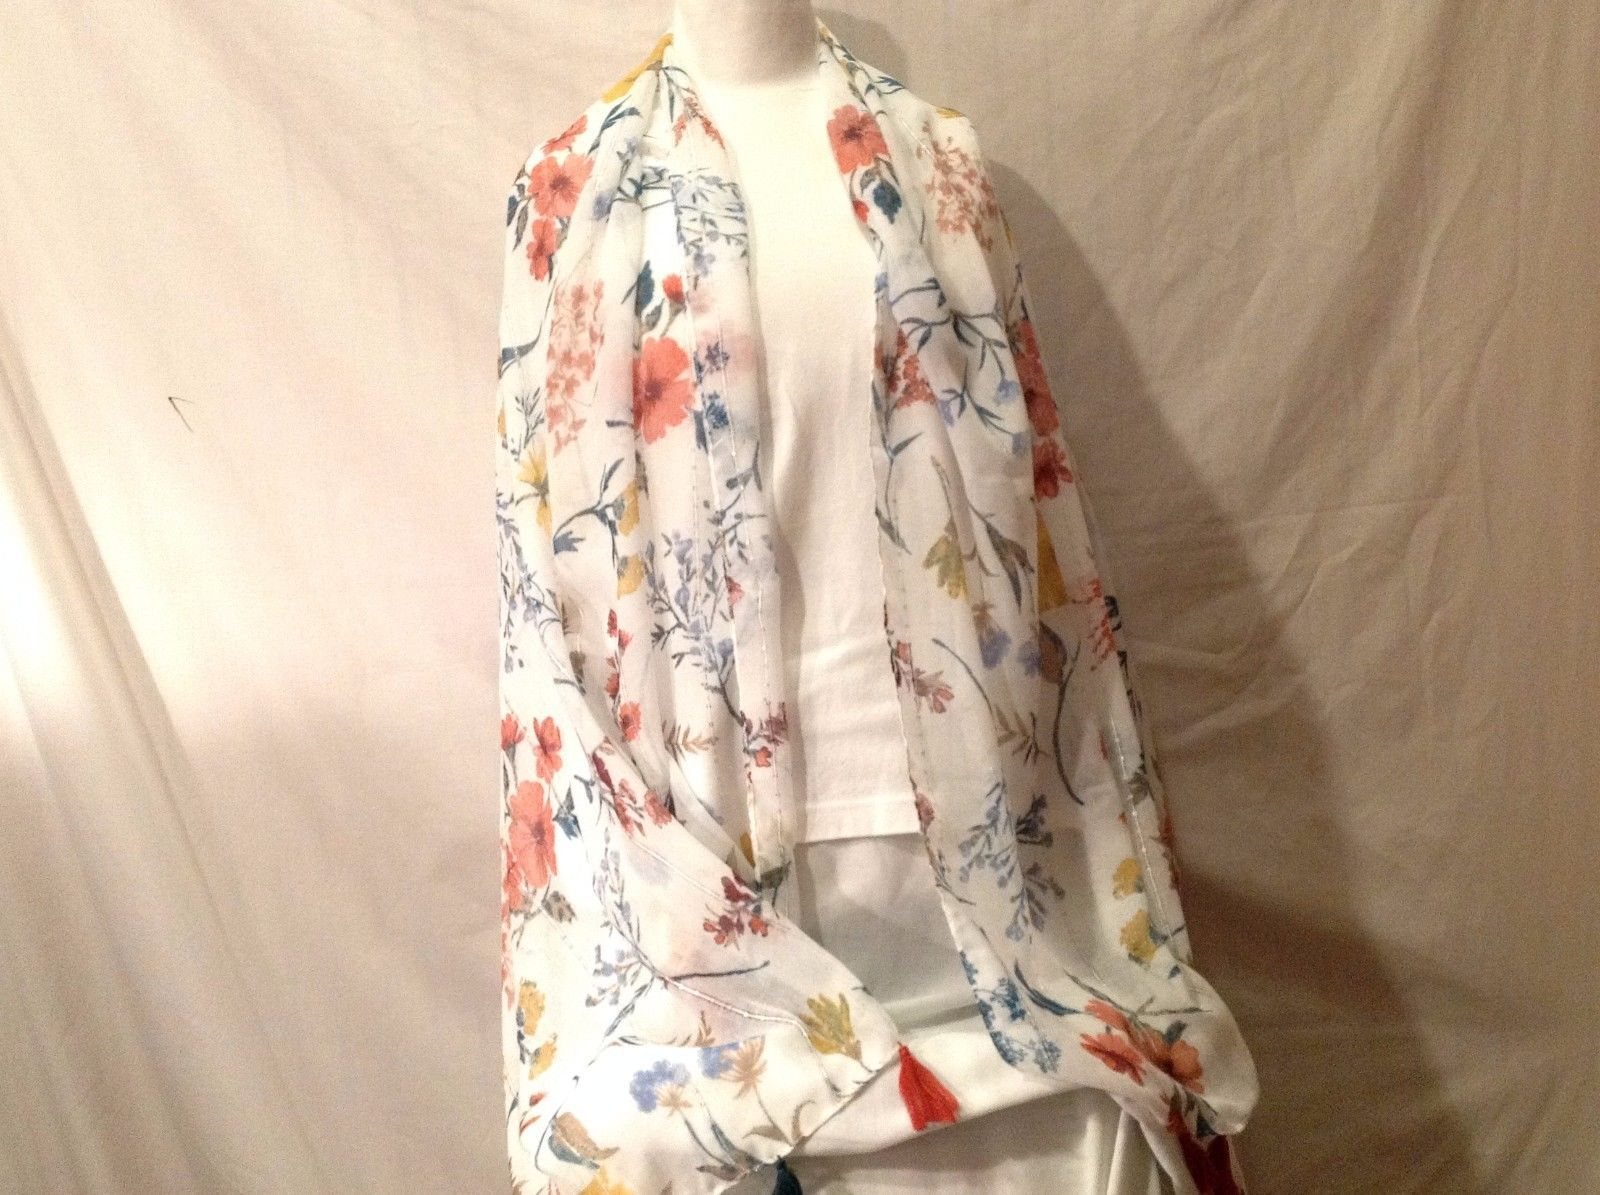 Soft Multi-color Floral design large shawl white garden colors 72 x 37 tassels